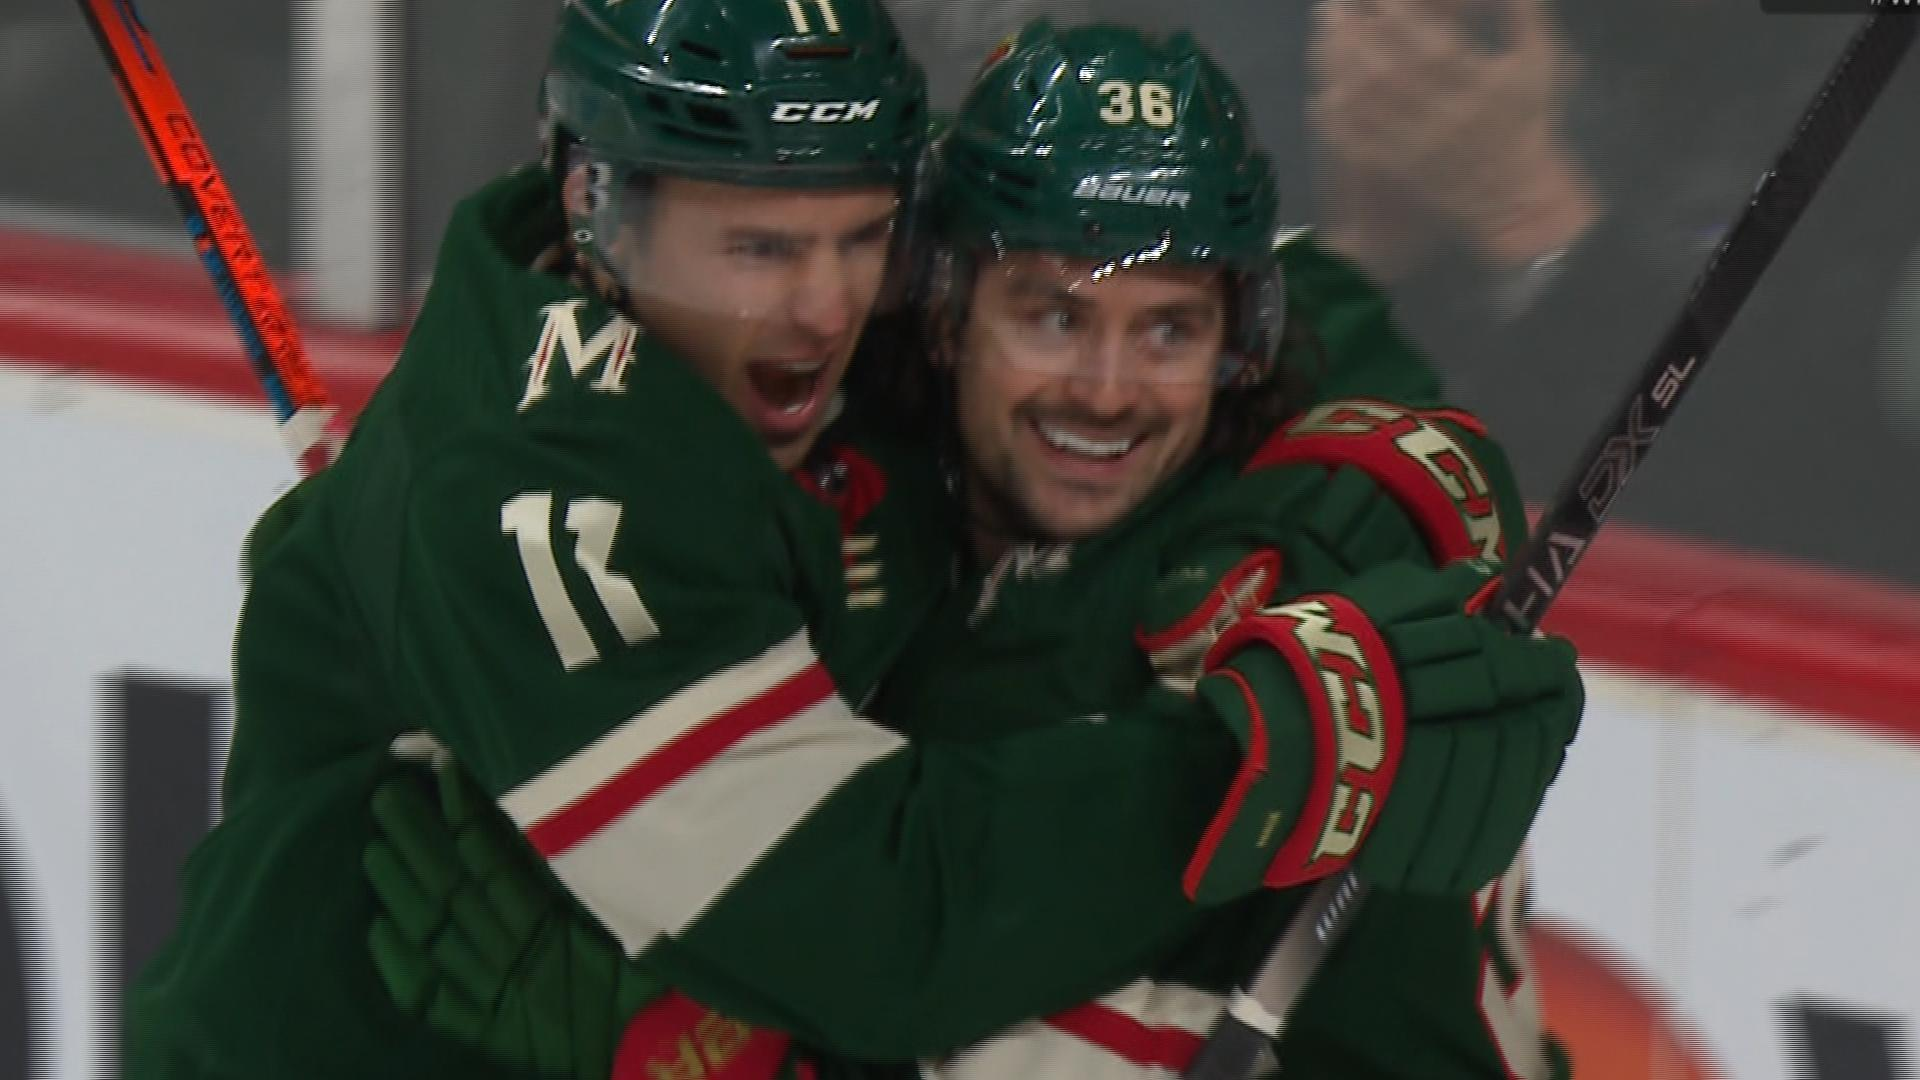 Mats Zuccarello and Jason Zucker score within minutes to give Wild